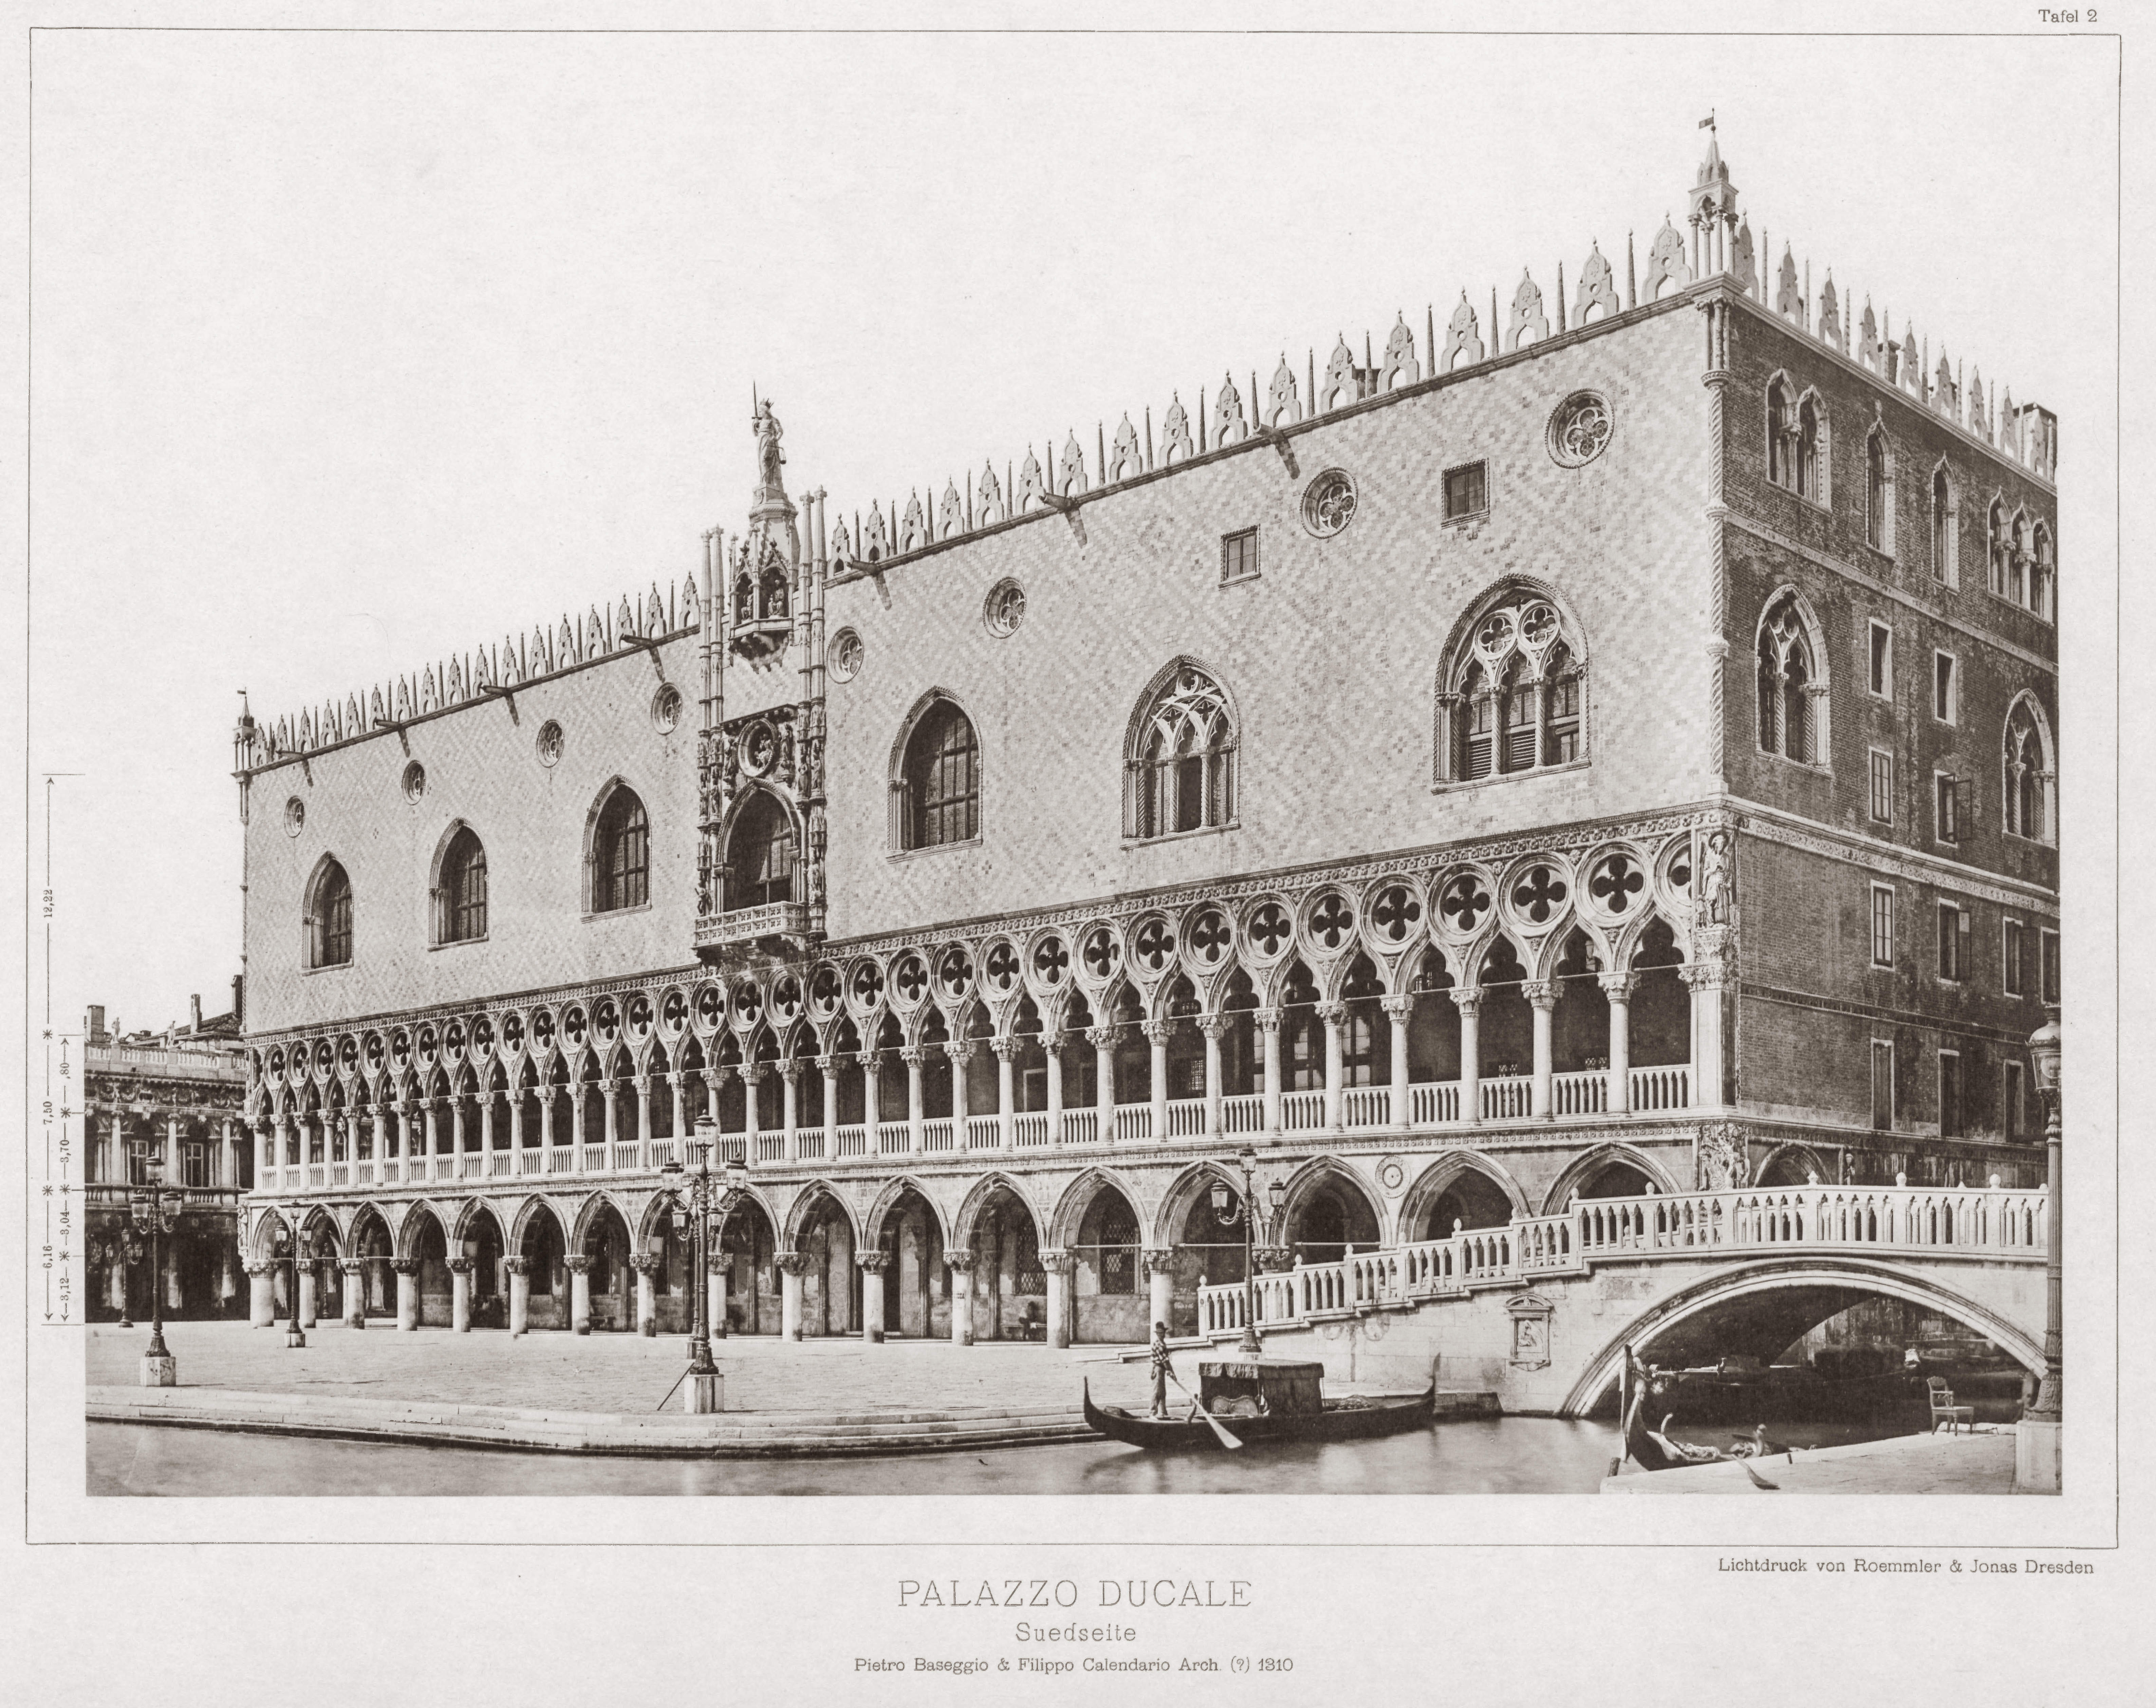 Pietro Baseggio, Architect of the Ducal Palace in Venice, Italy